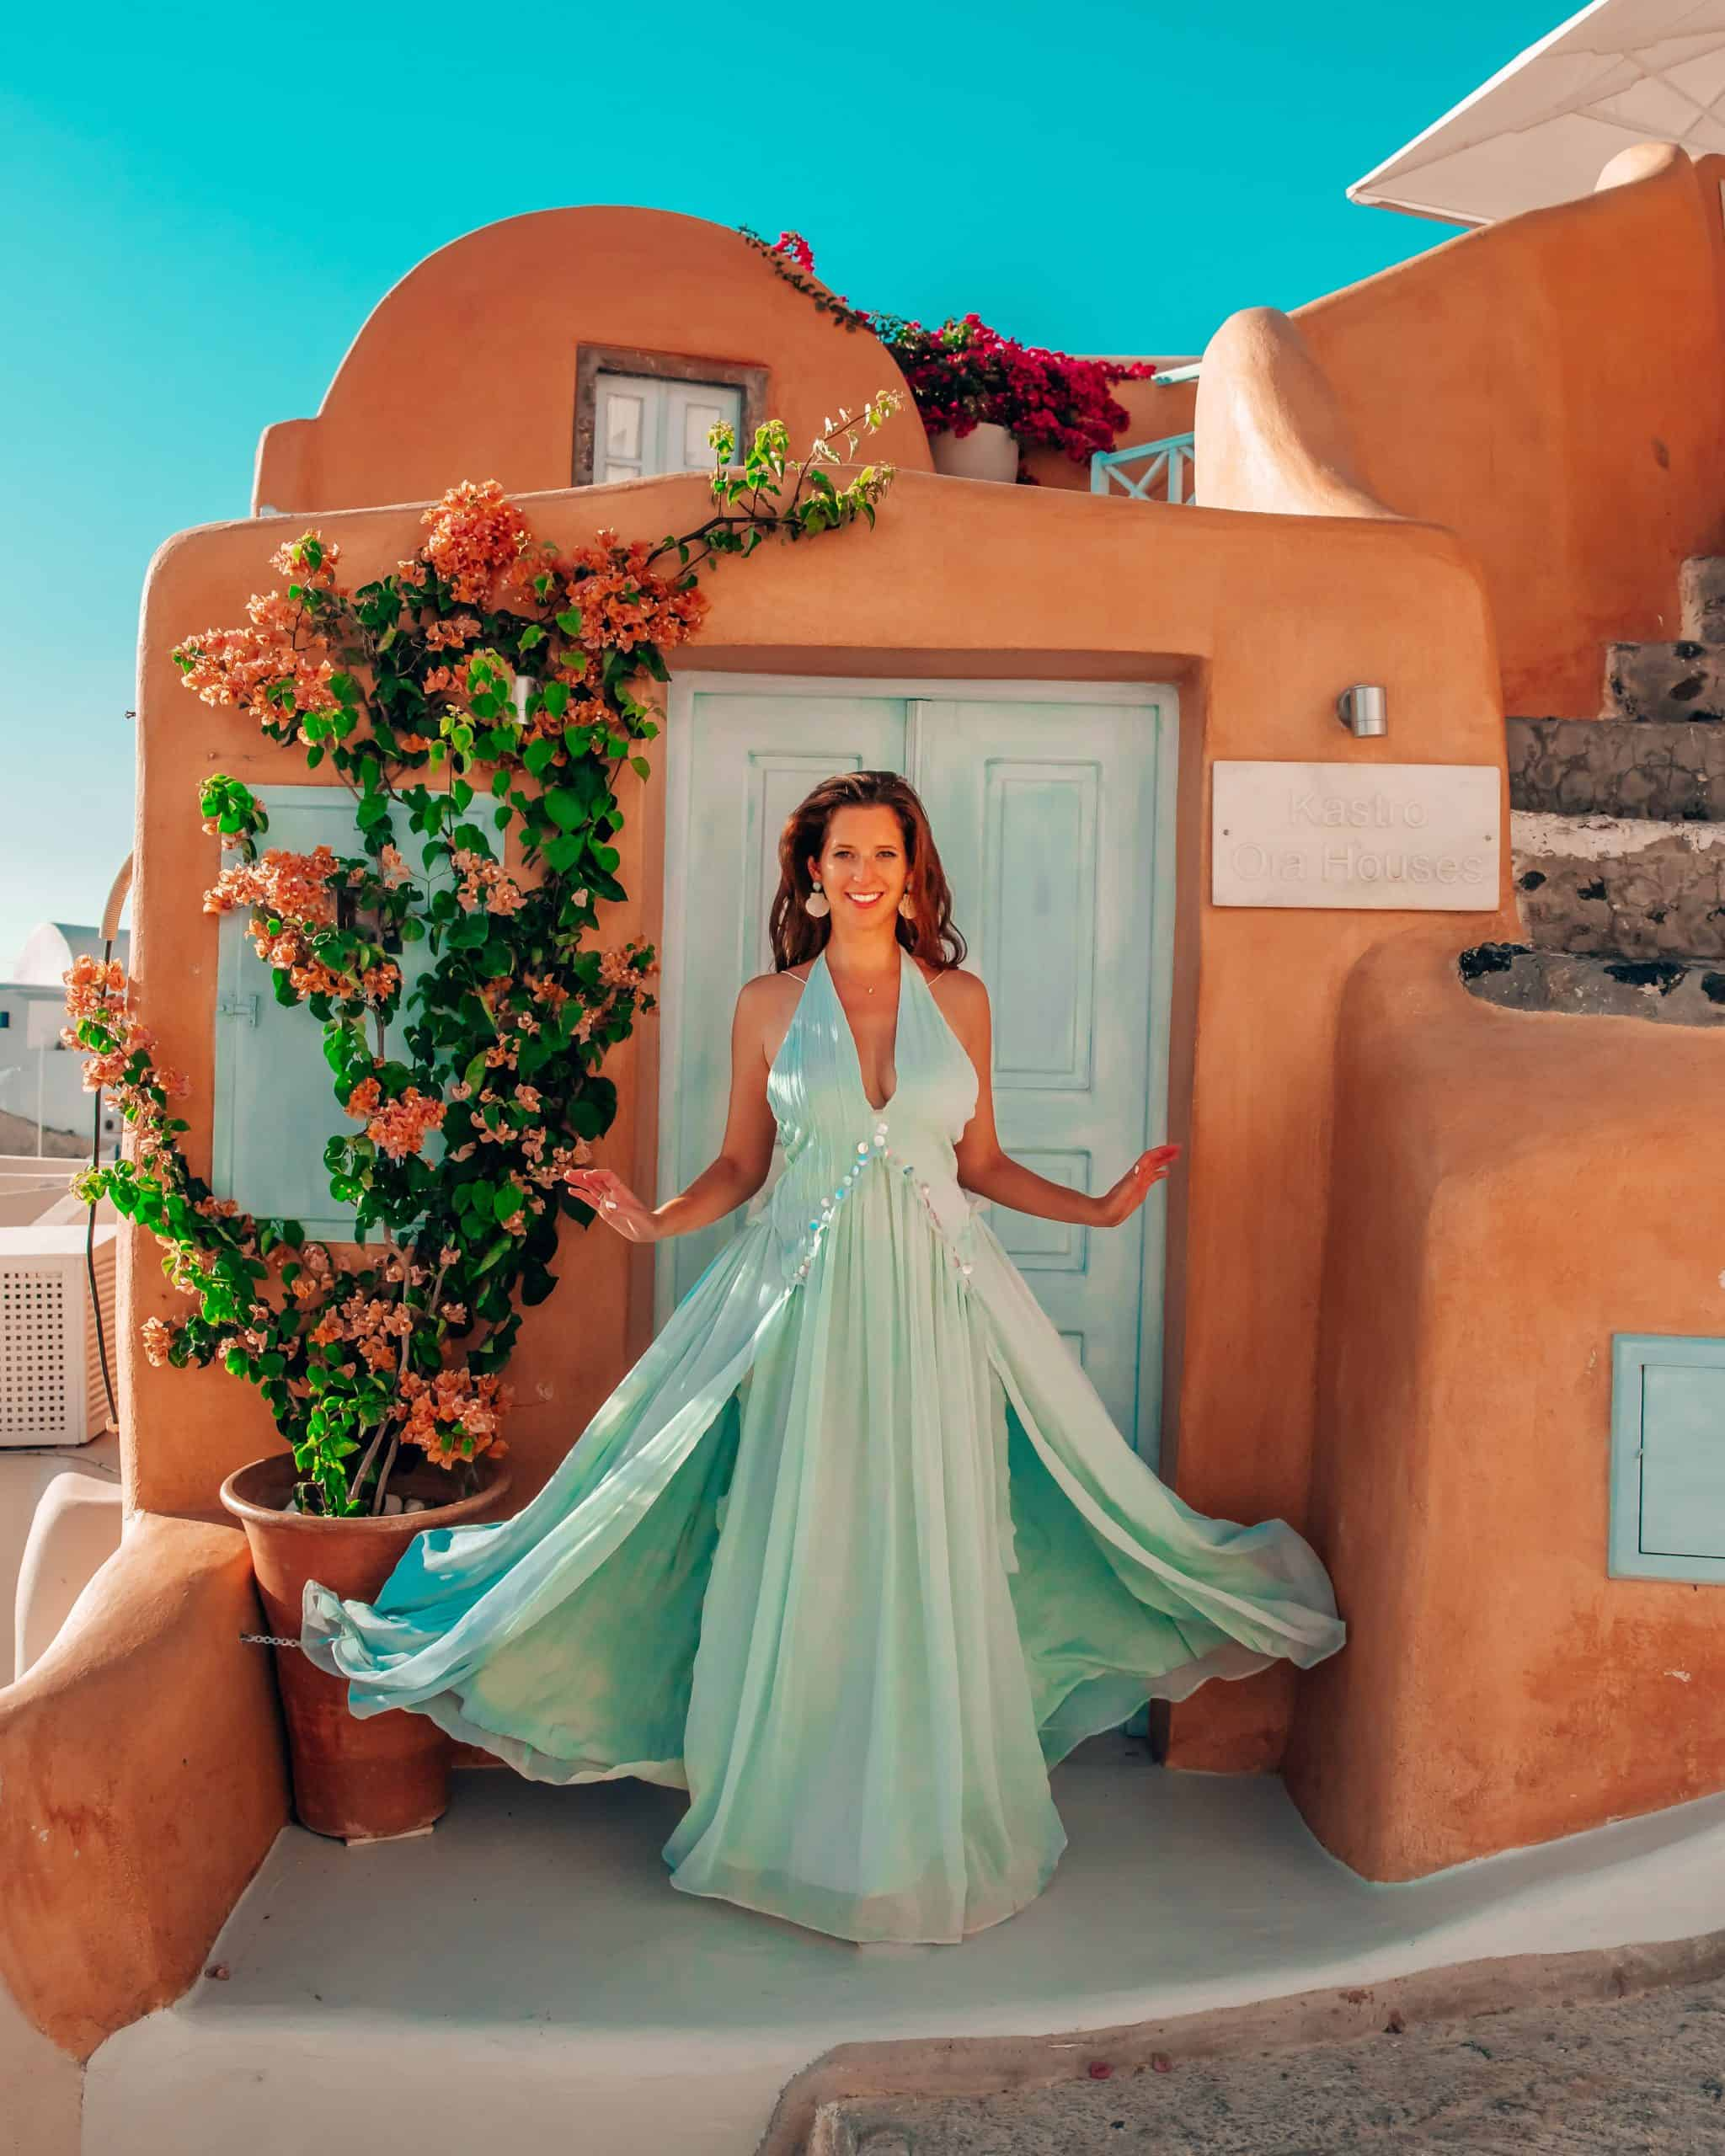 Bettina in front of Turquoise Home at Pink Kastro Homes in Oia, Santorini